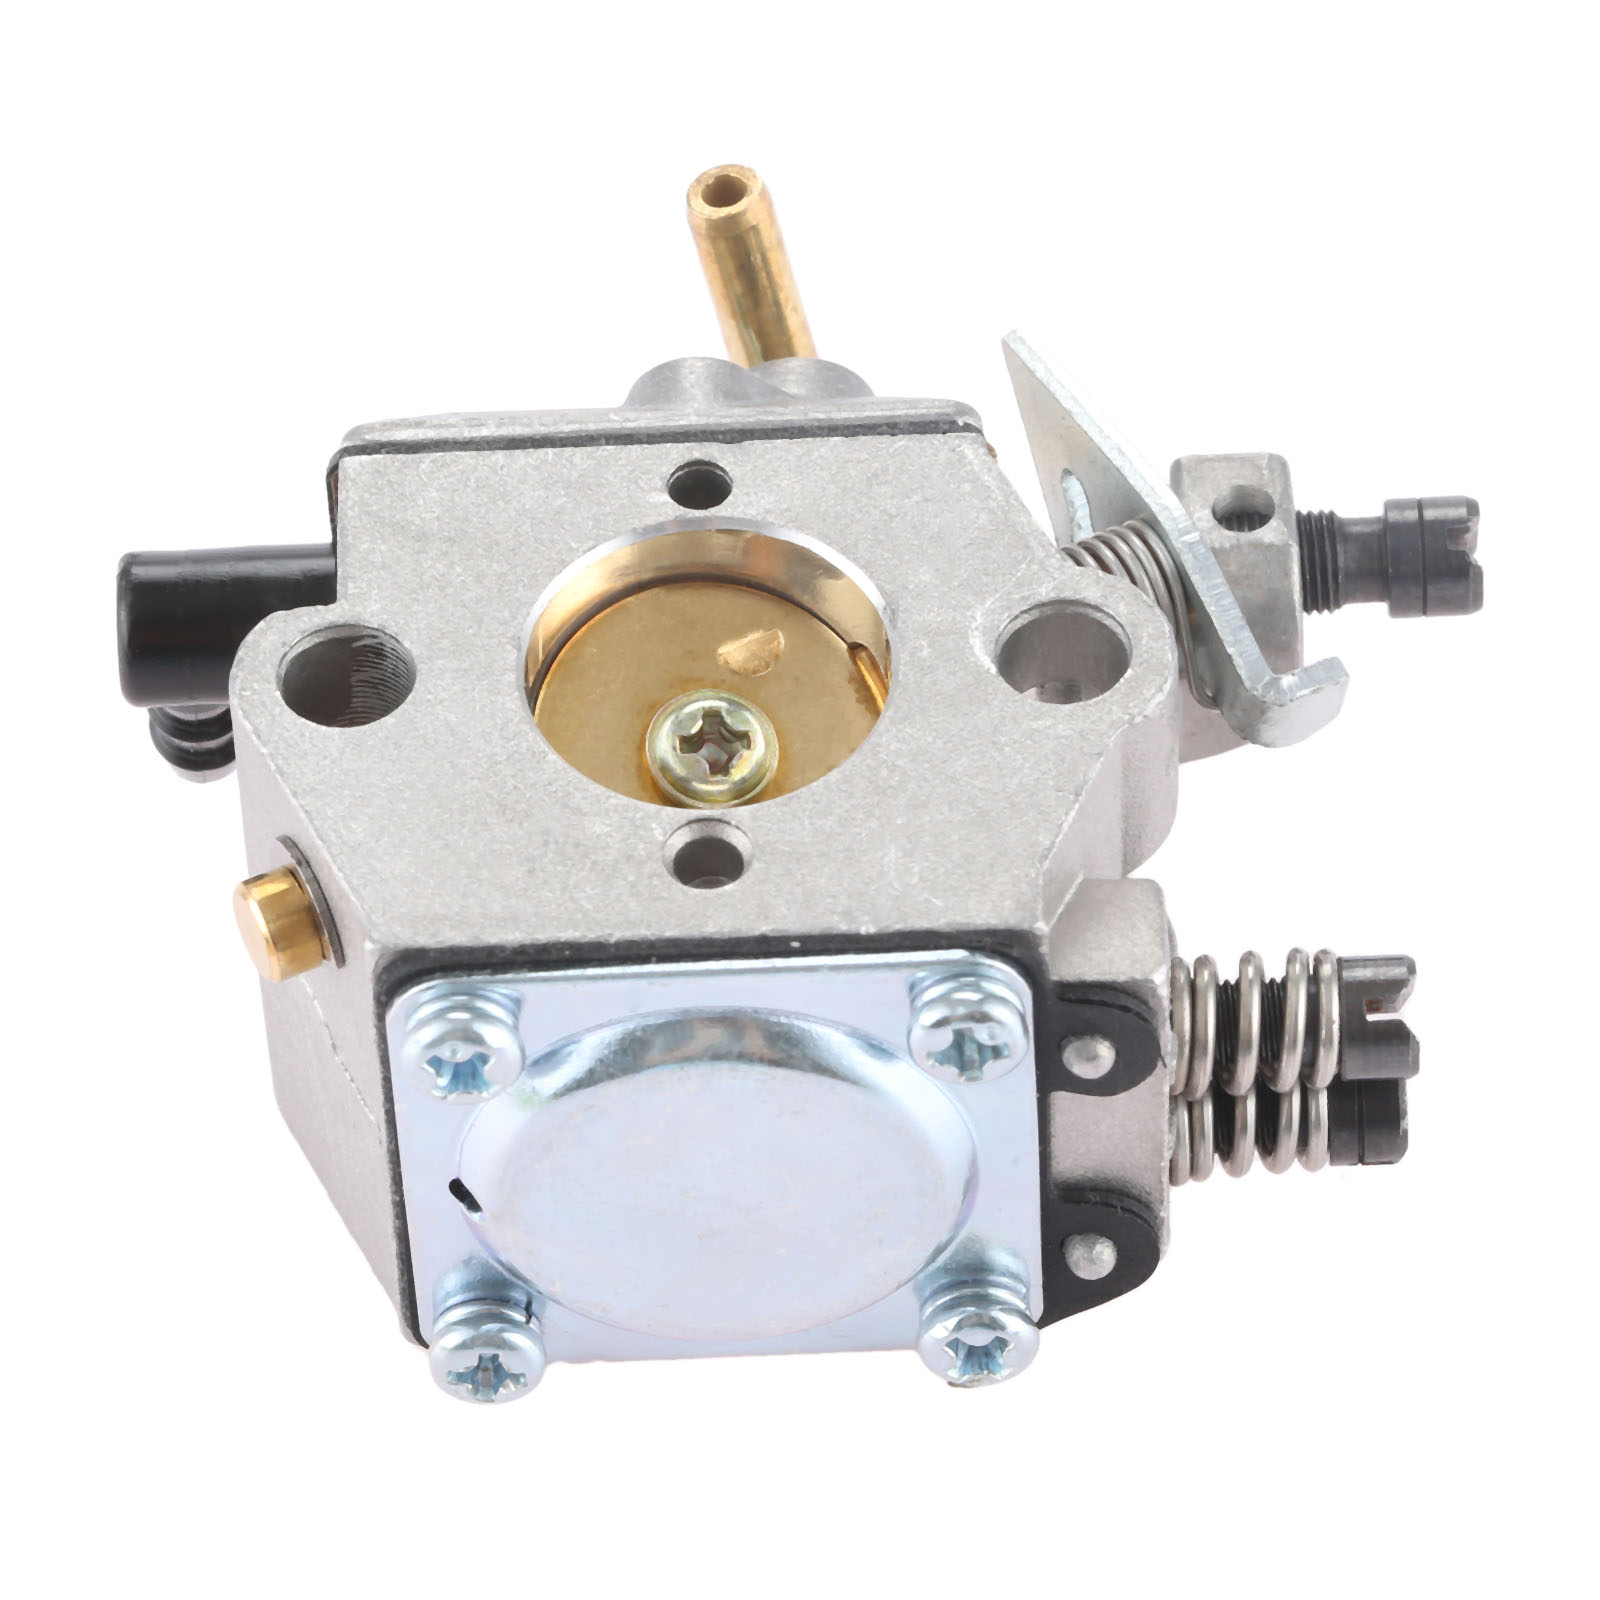 Image 3 - DRELD Carburetor For Stihl 024 026 MS240 MS260 024AV 024S Chainsaw 1121 120 0611 Replace OEM Walbro WT 194 WT 194 1 wt 22 Carb-in Chainsaws from Tools